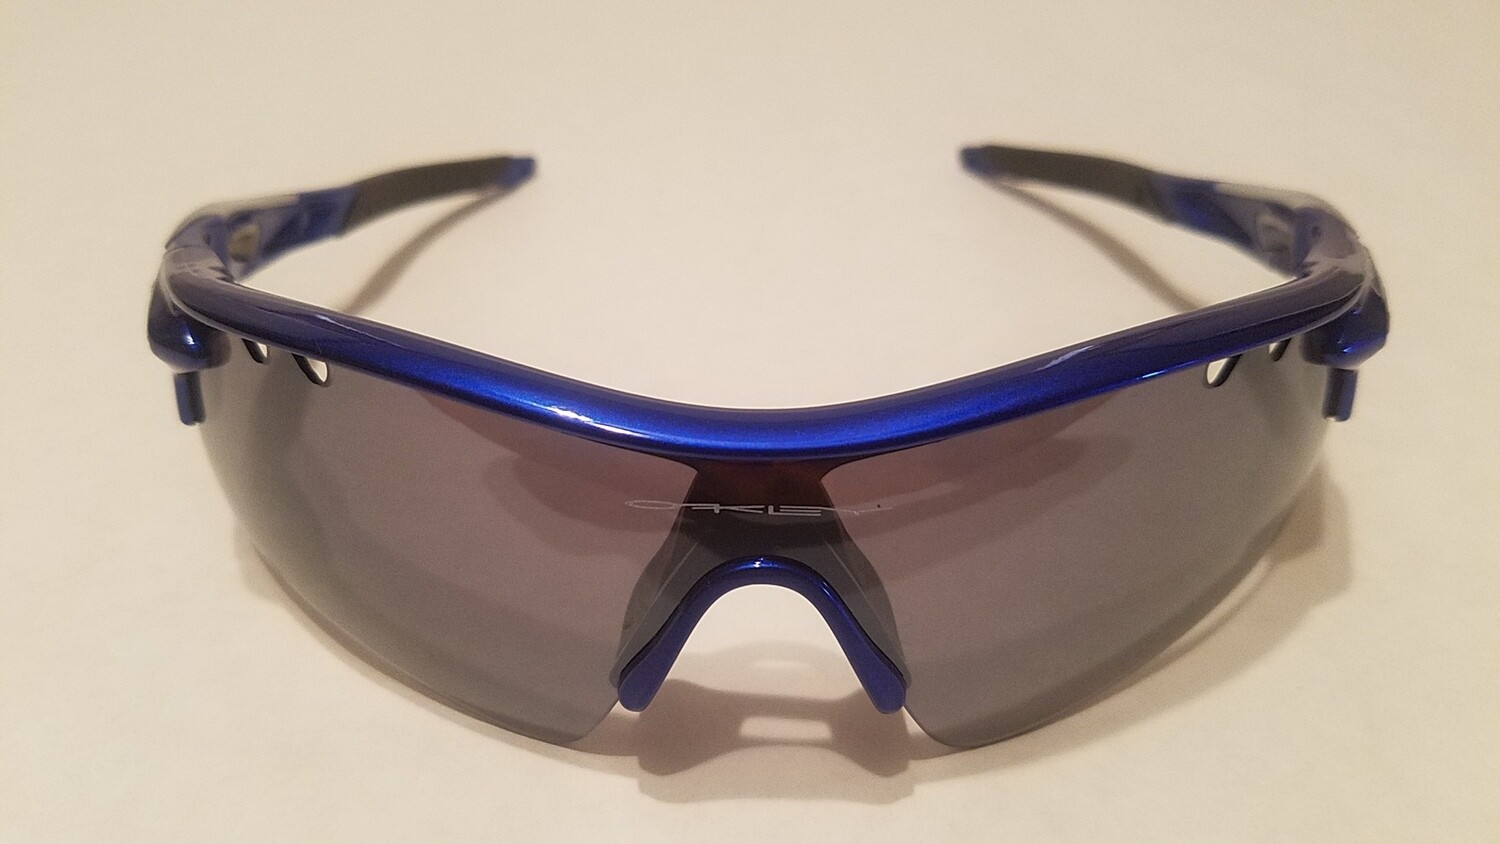 Sport Style Sunglasses :: Blue Frames w/ Black Nose and Earpiece